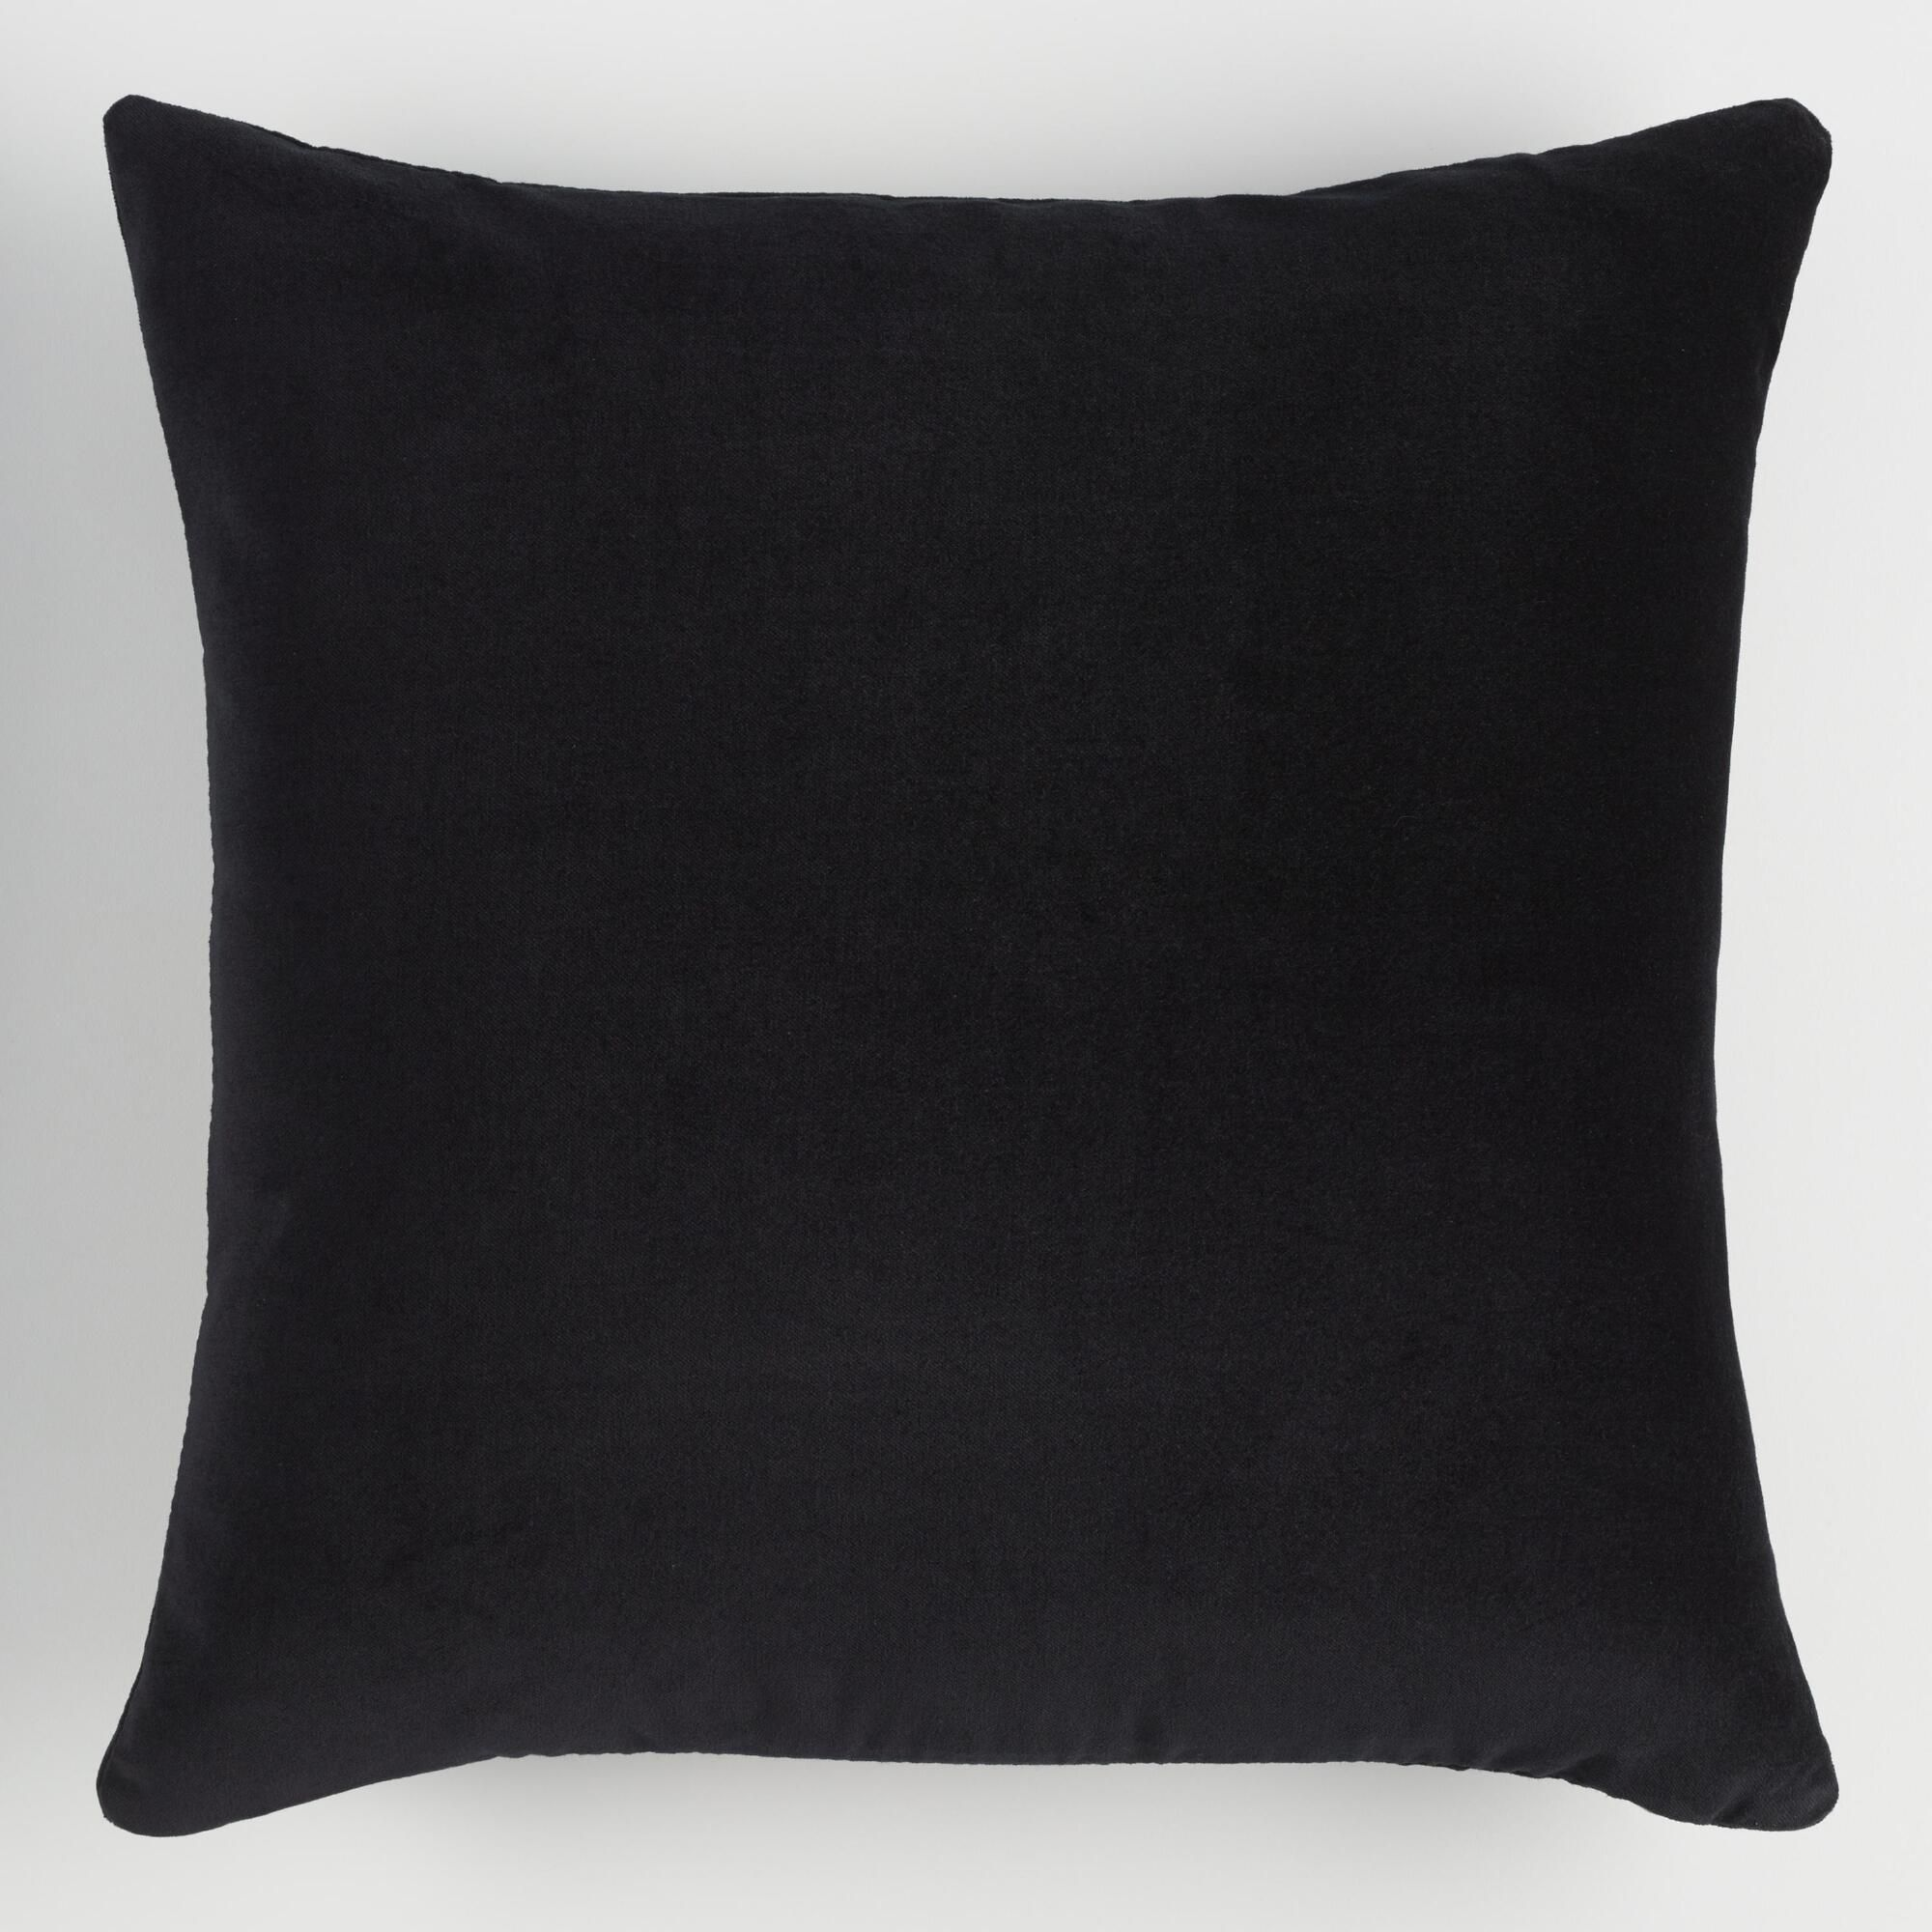 Black Velvet Throw Pillow Cotton 18 Square By World Market